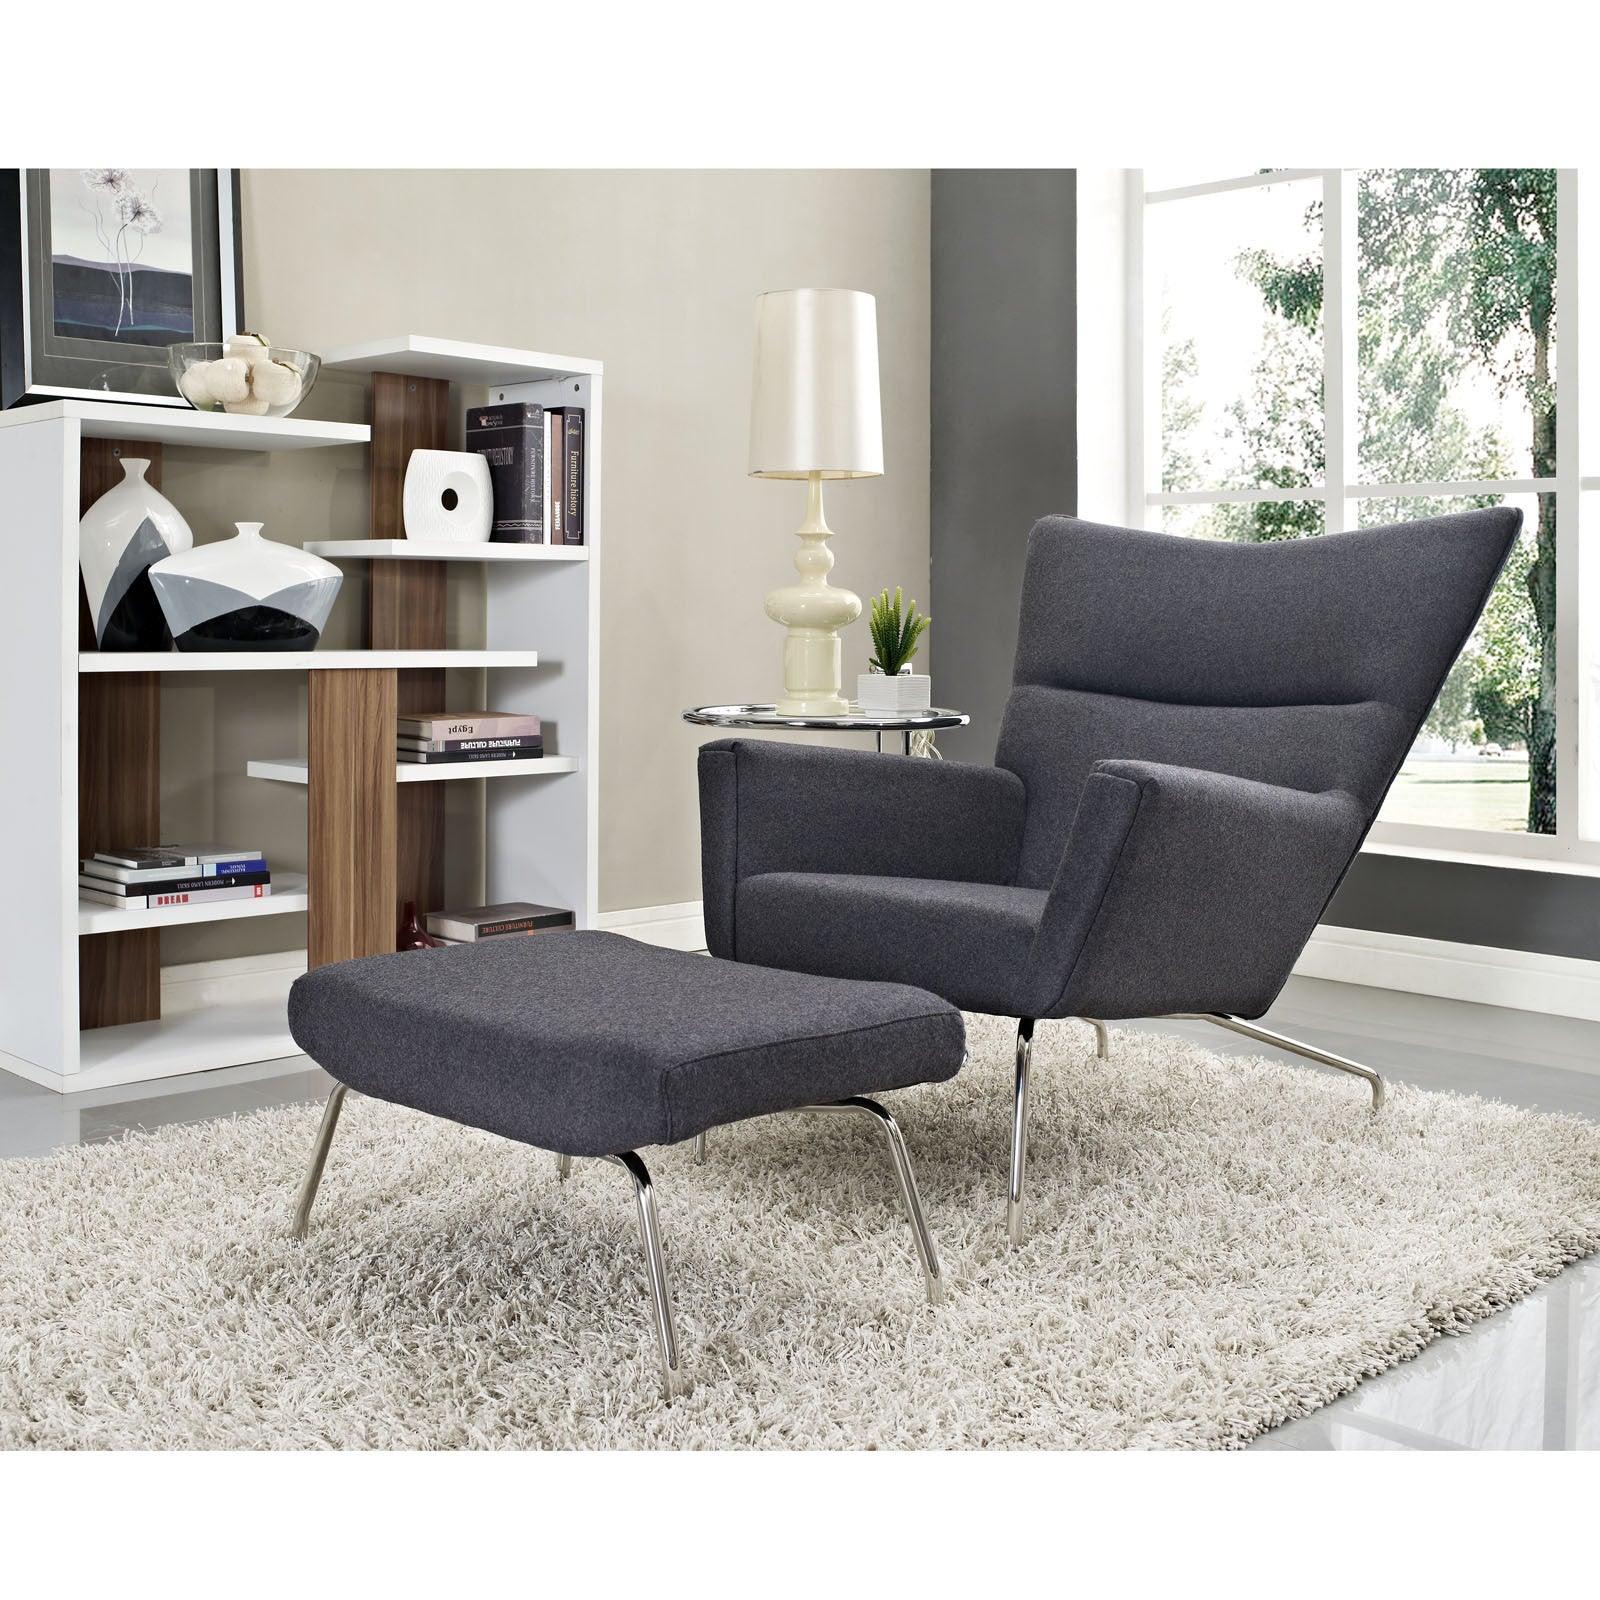 ... Hans Wegner Wing Chair U0026 Ottoman Reproductions   Fabric   The Modern  Source   9 ...